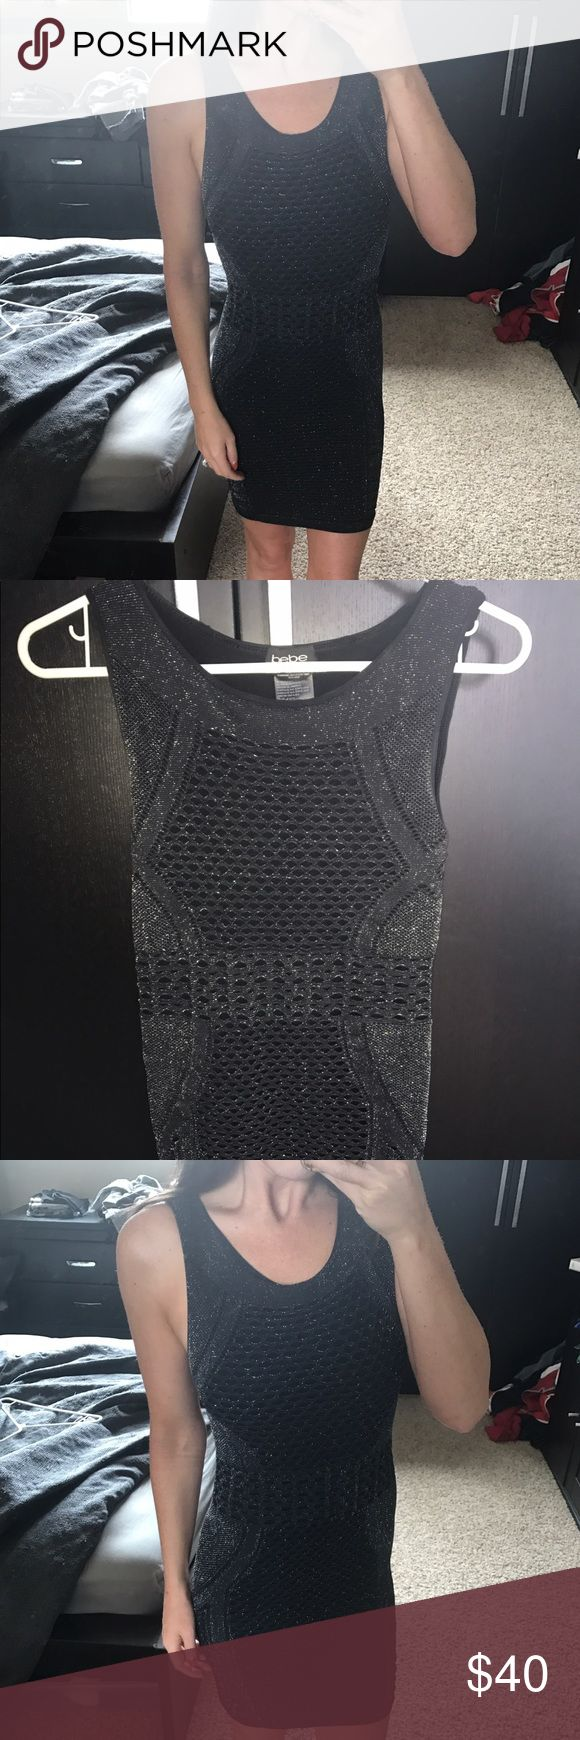 Bebe metallic bodycon dress This dress has a metallic mesh pattern overlay. Super stretchy and figure flattering. Holds you in like a bodycon dress. Super comfortable and perfect for a night out! No rips or tears only worn twice. bebe Dresses Midi